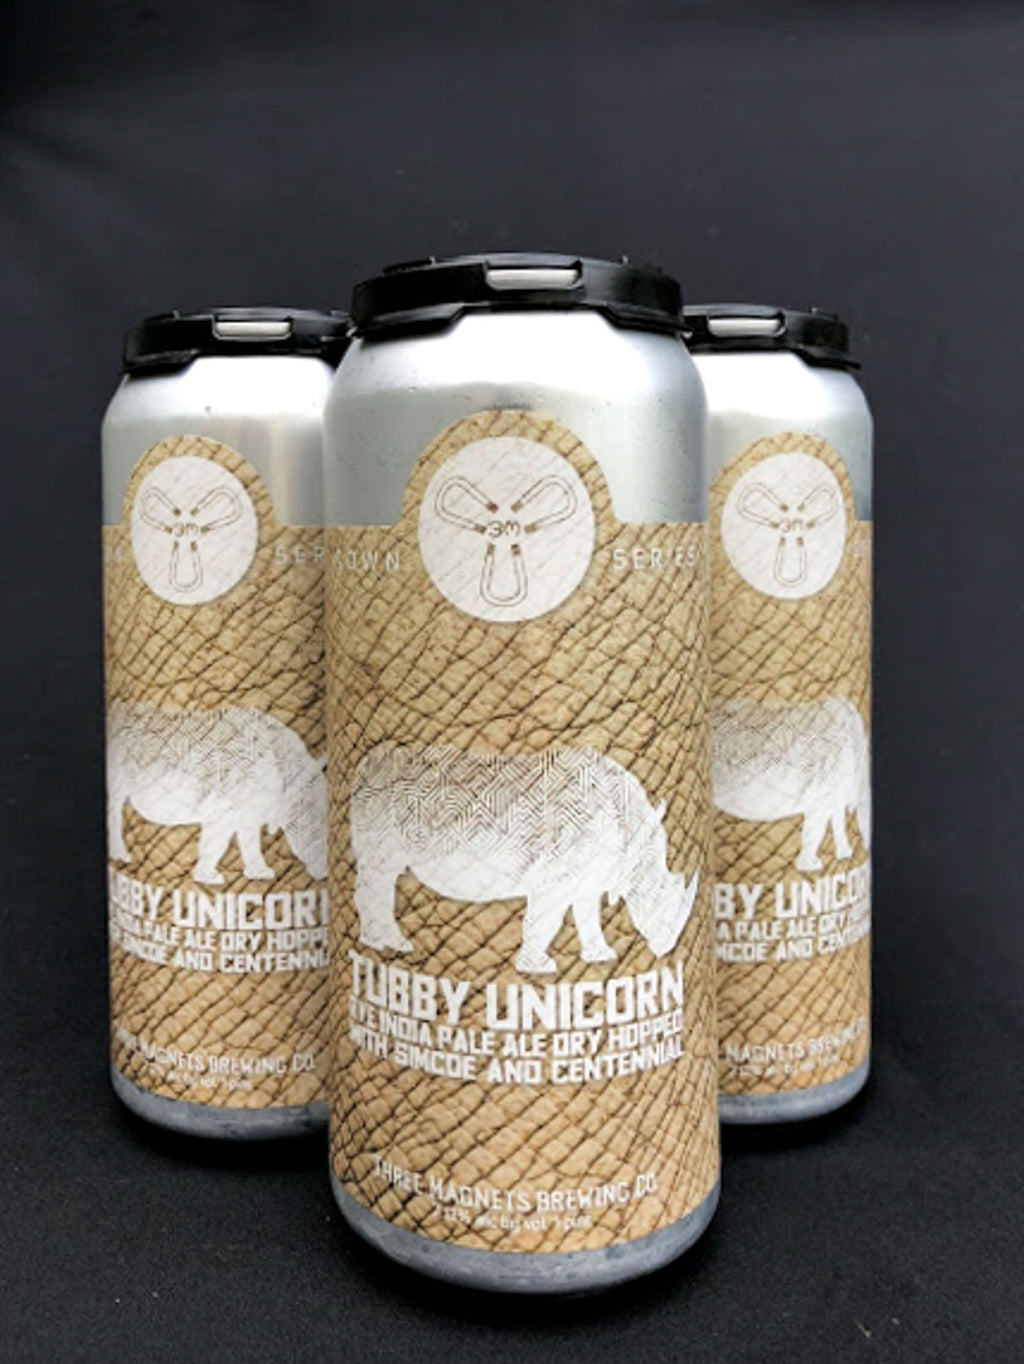 Buy 3 Magnets Brewing Tubby Unicorn Rye IPA Online